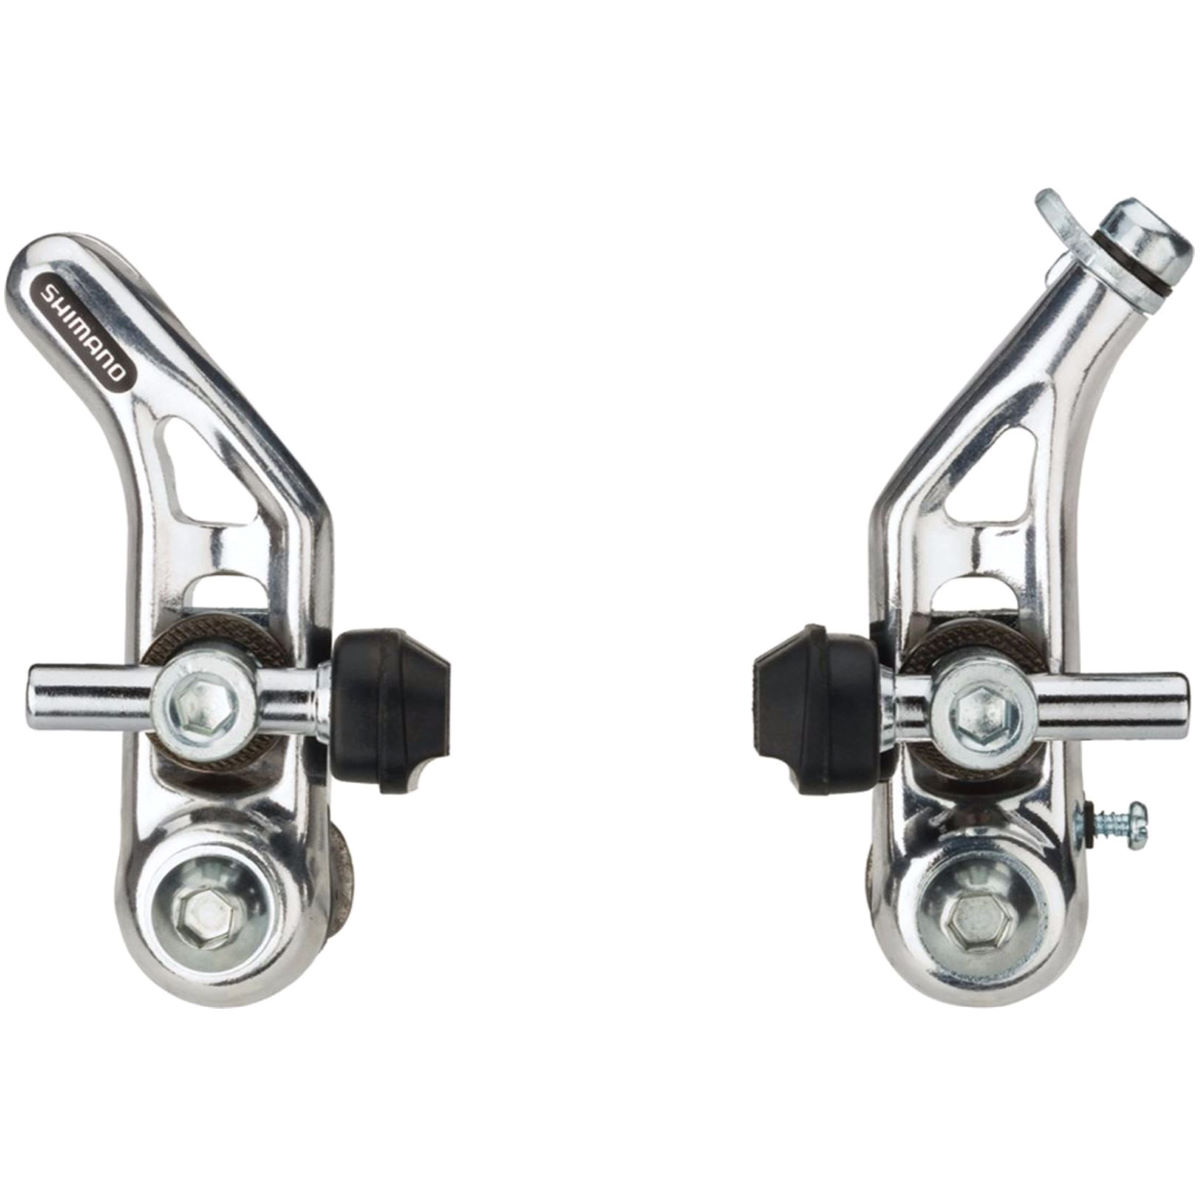 Freins cantilever Shimano Altus CT91 - Option 2 Argenté